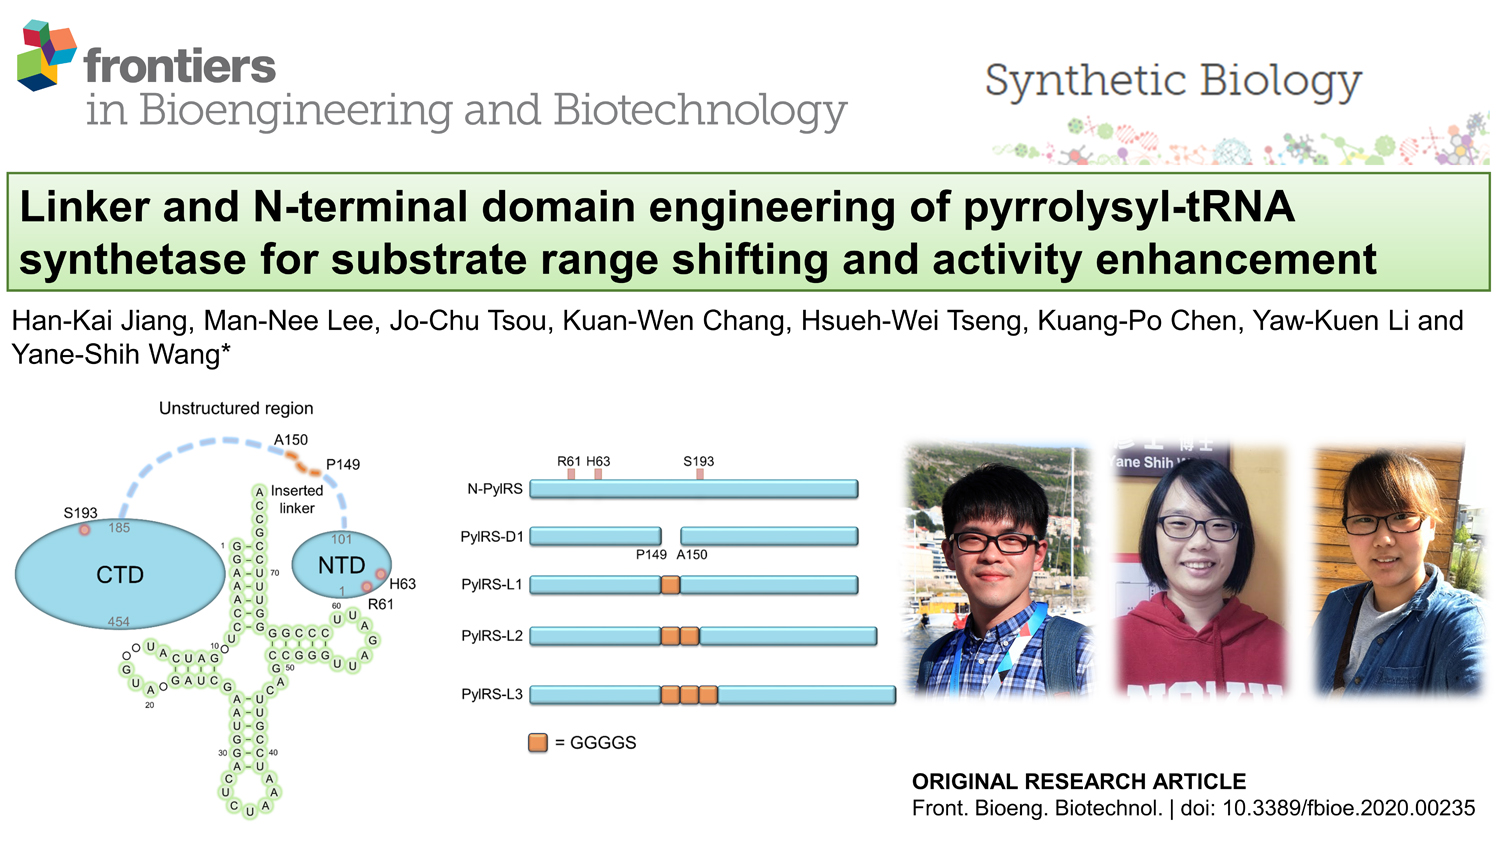 Linker and N-terminal domain engineering of pyrrolysyl-tRNA synthetase for substrate range shifting and activity enhancement